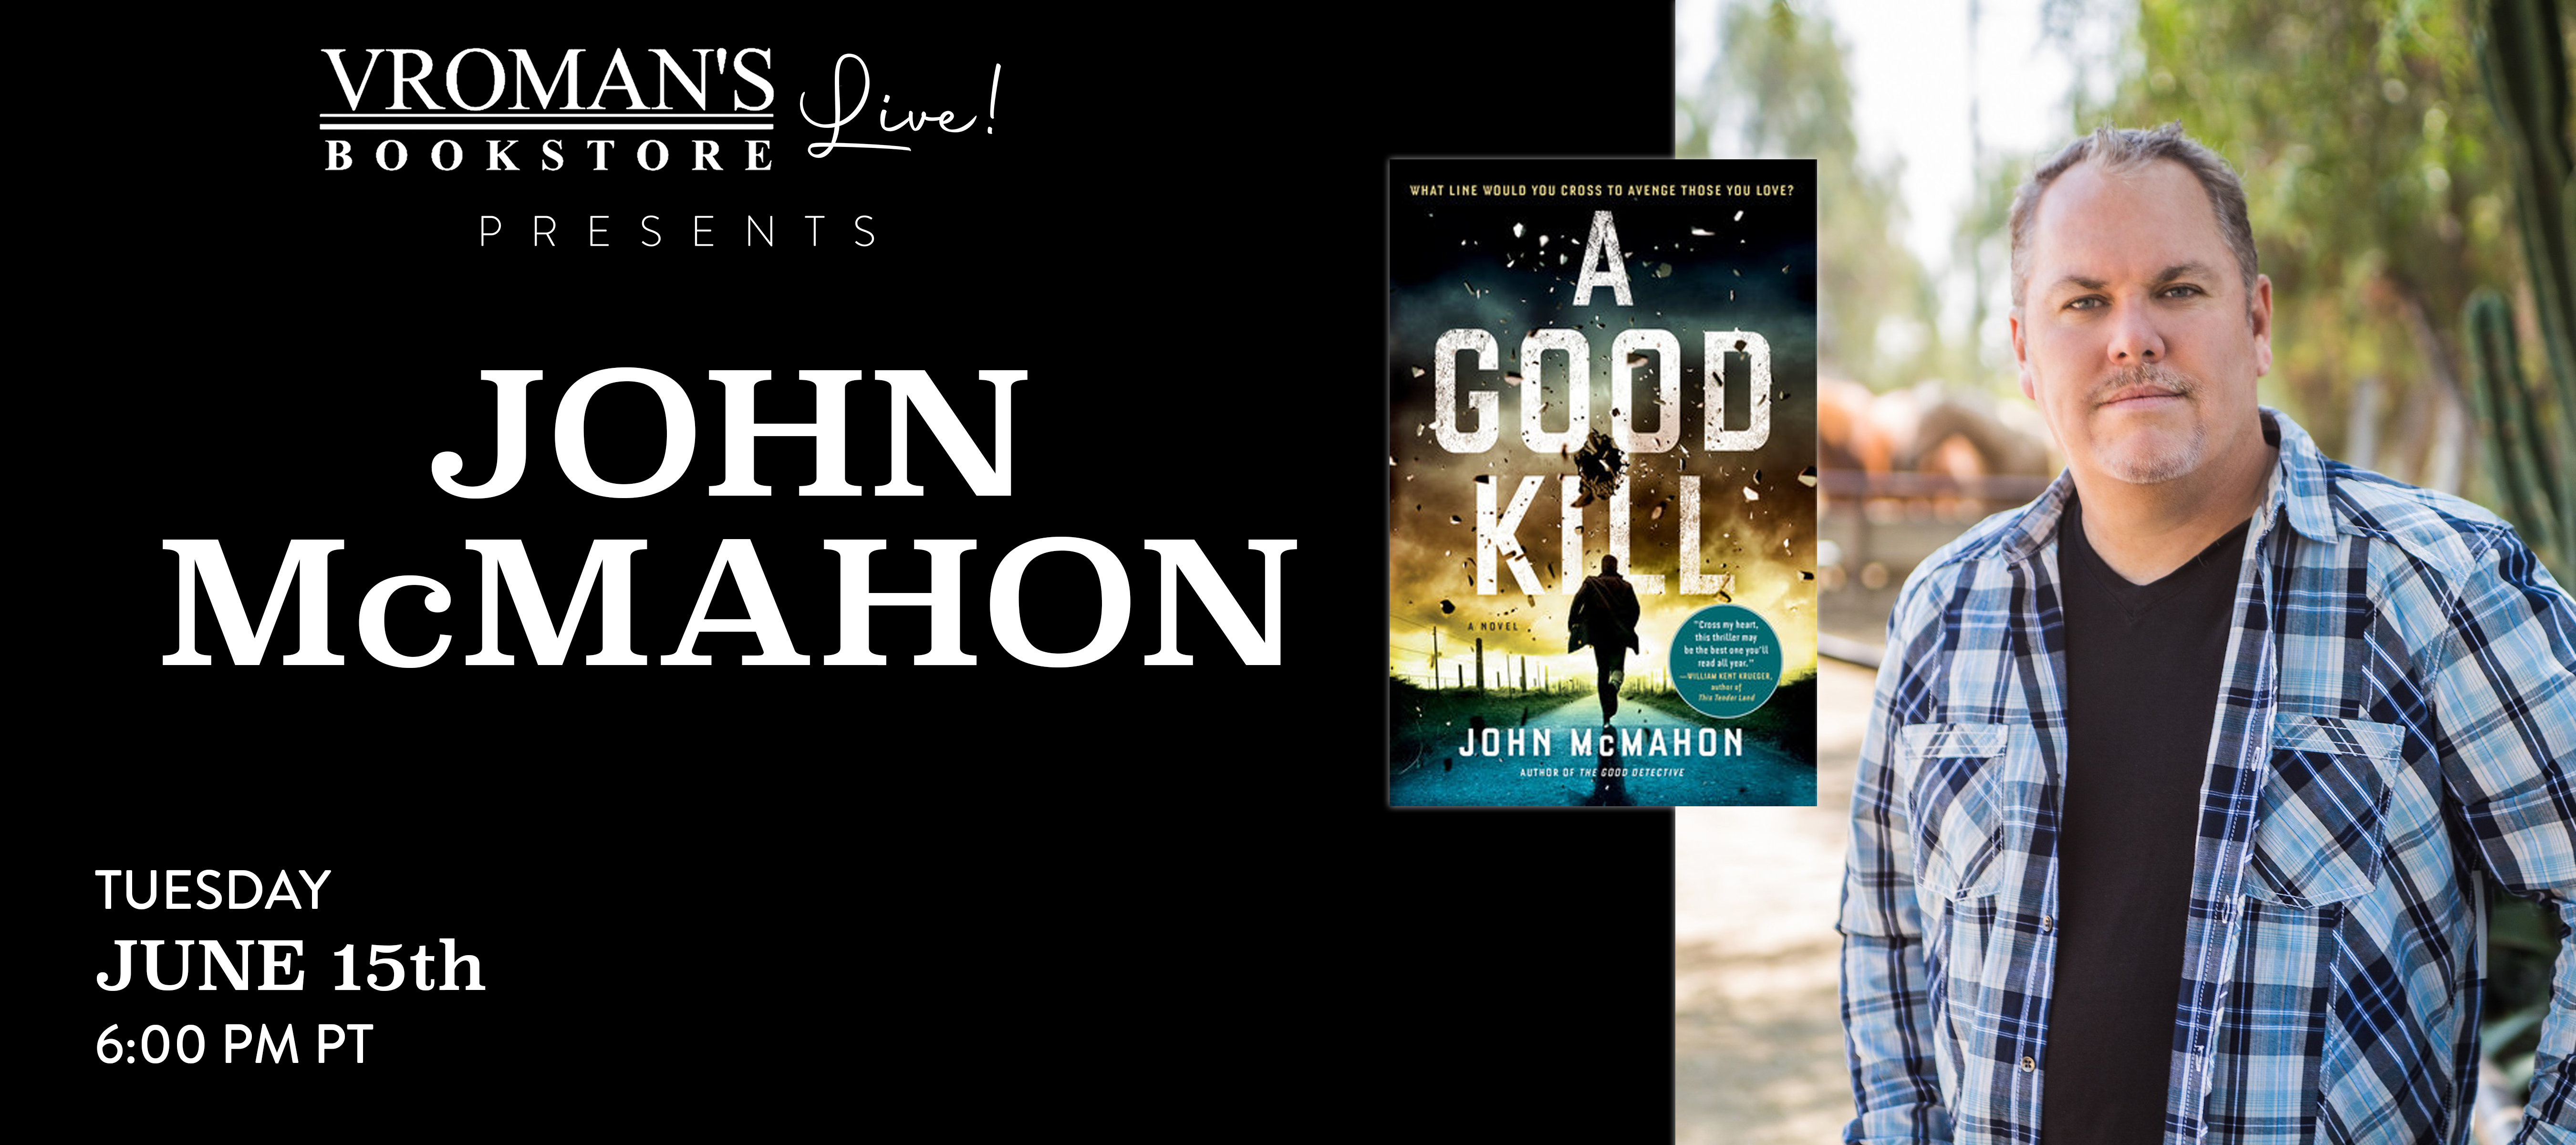 Image of Vroman's Live - John McMahon discusses A Good Kill on Tuesday, June 15th at 6pm on Crowdcast